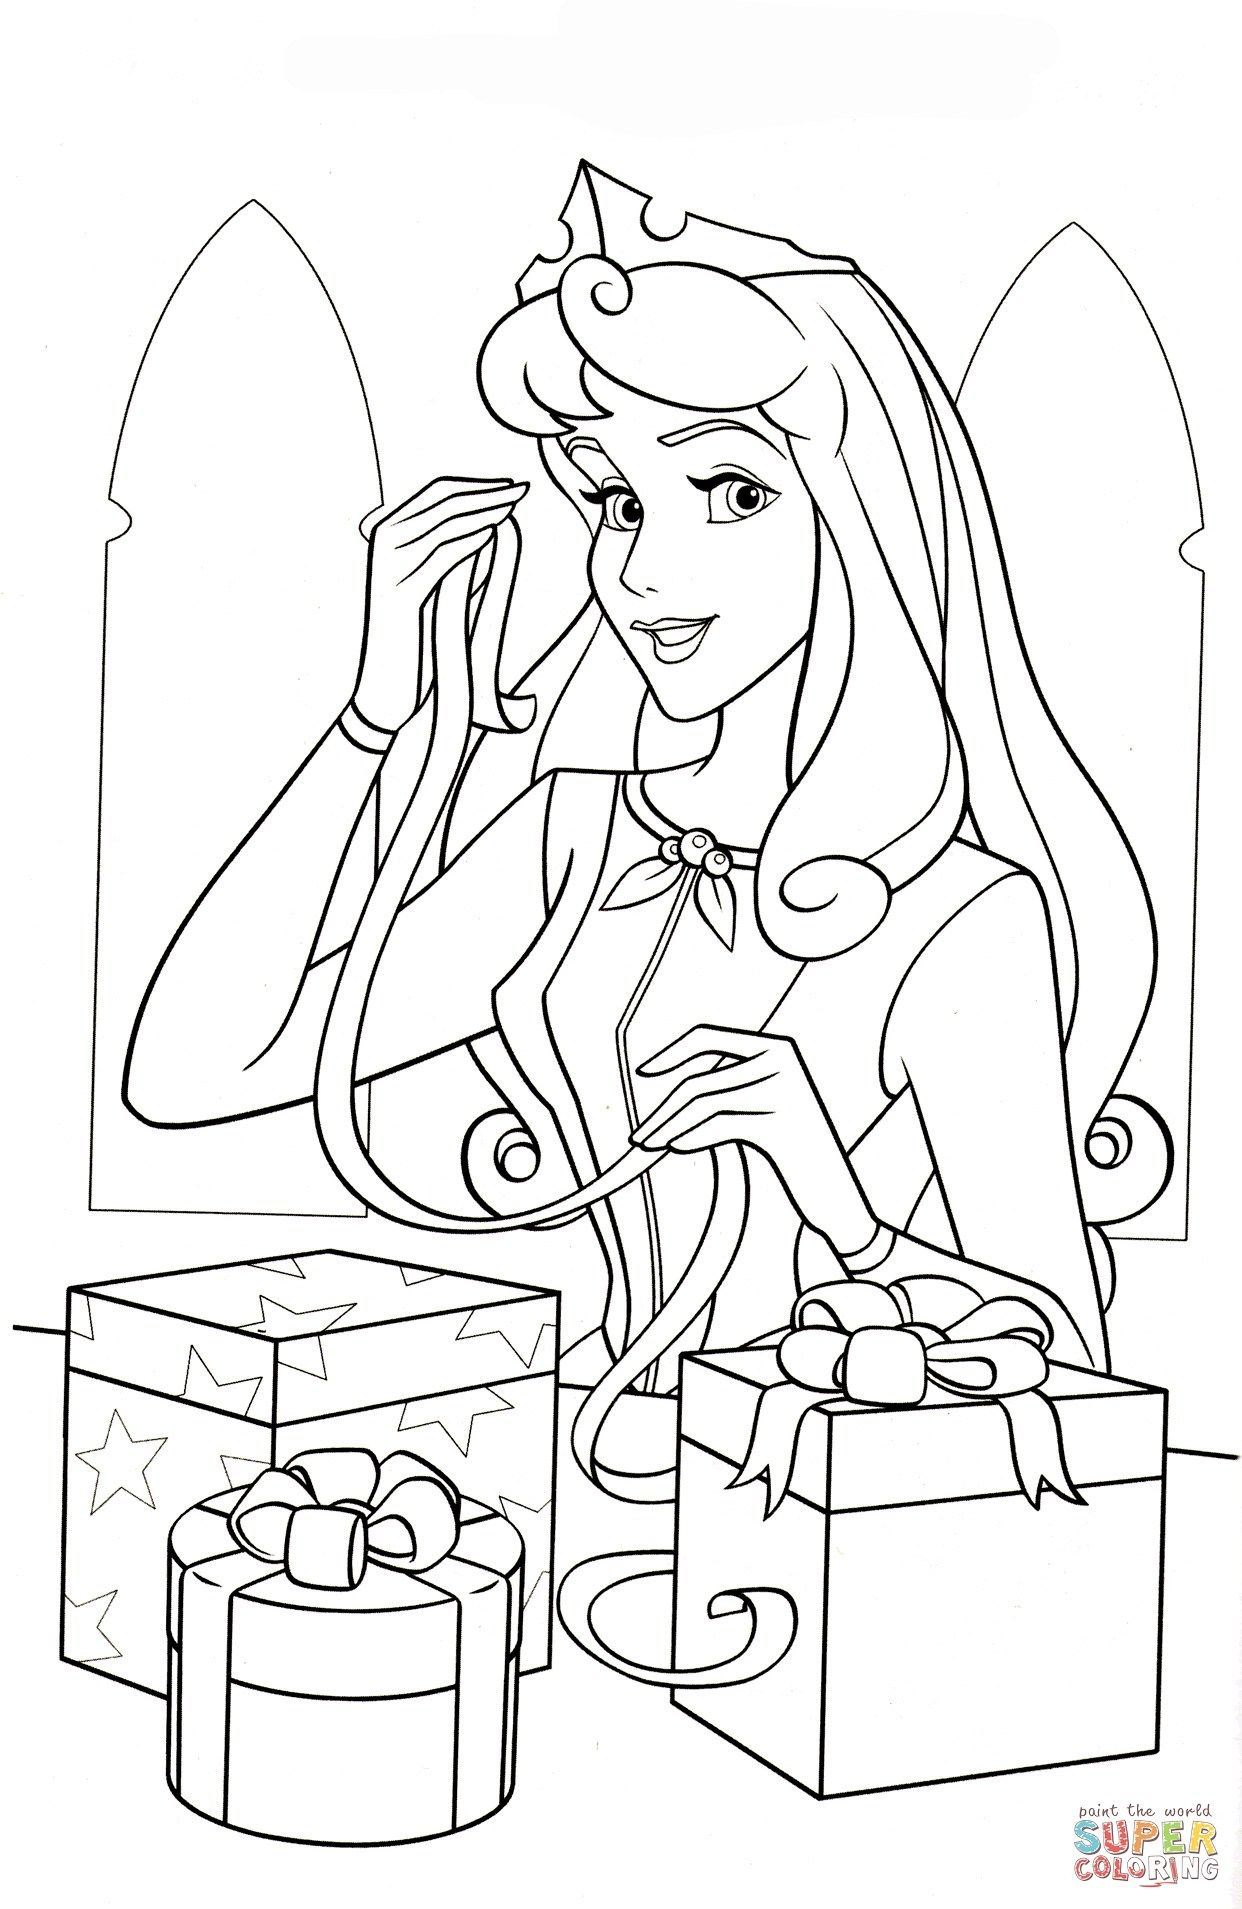 24 Inspired Picture Of Aurora Coloring Pages Davemelillo Com Disney Princess Coloring Pages Princess Coloring Pages Christmas Coloring Pages